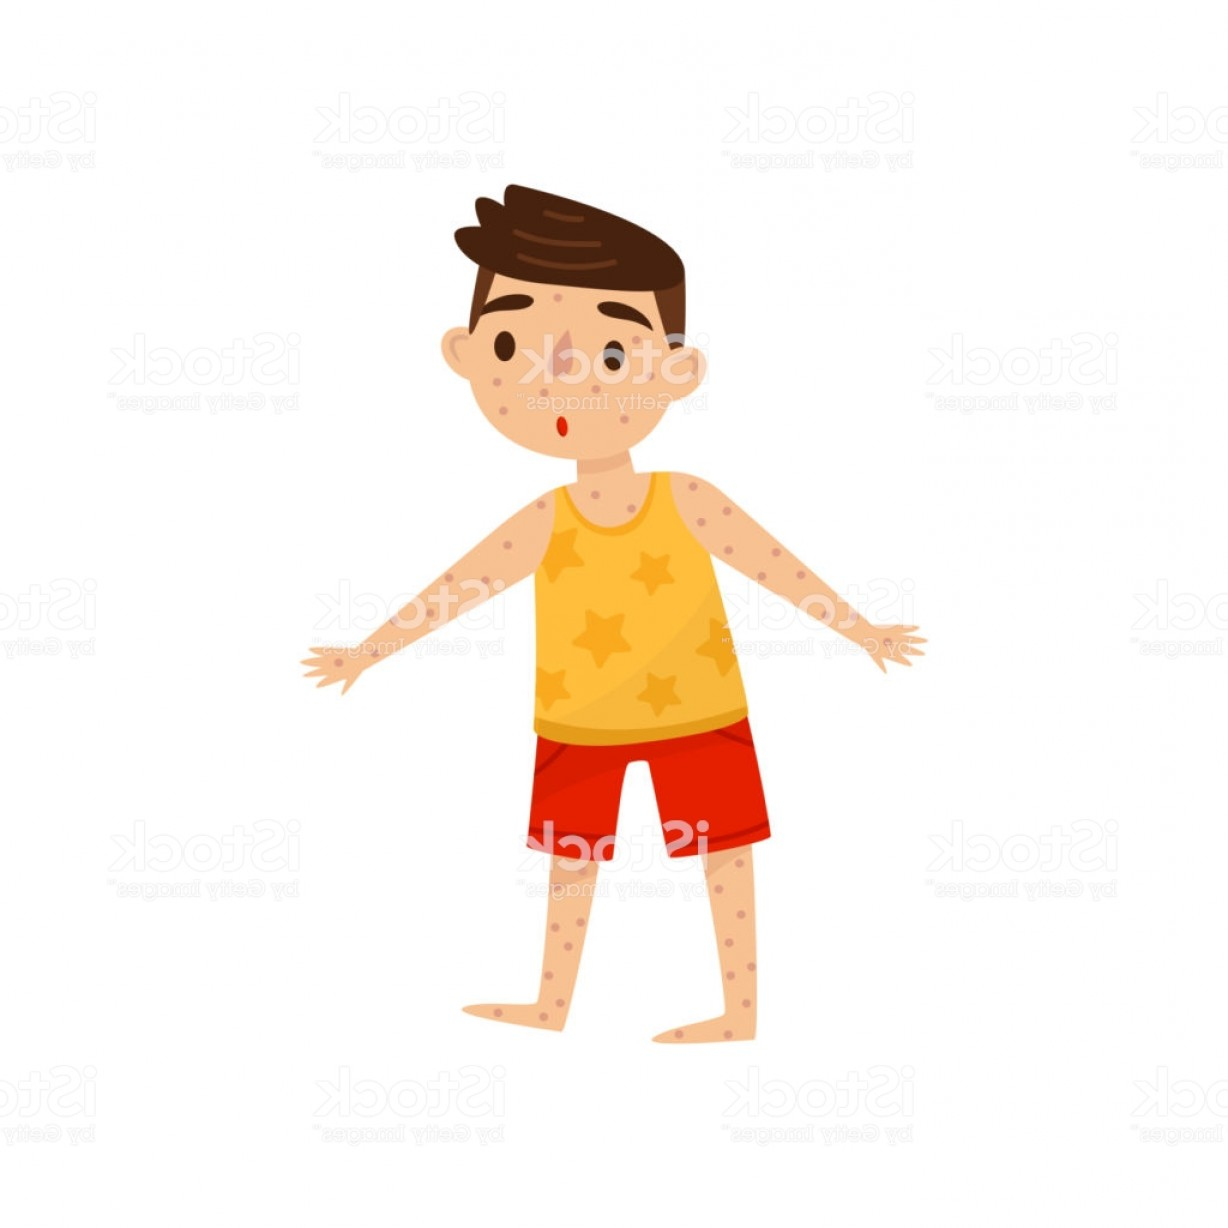 Infectious Disease Vector: Little Kid With Rash On His Body Boy With Measles Infectious Disease Child With Gm